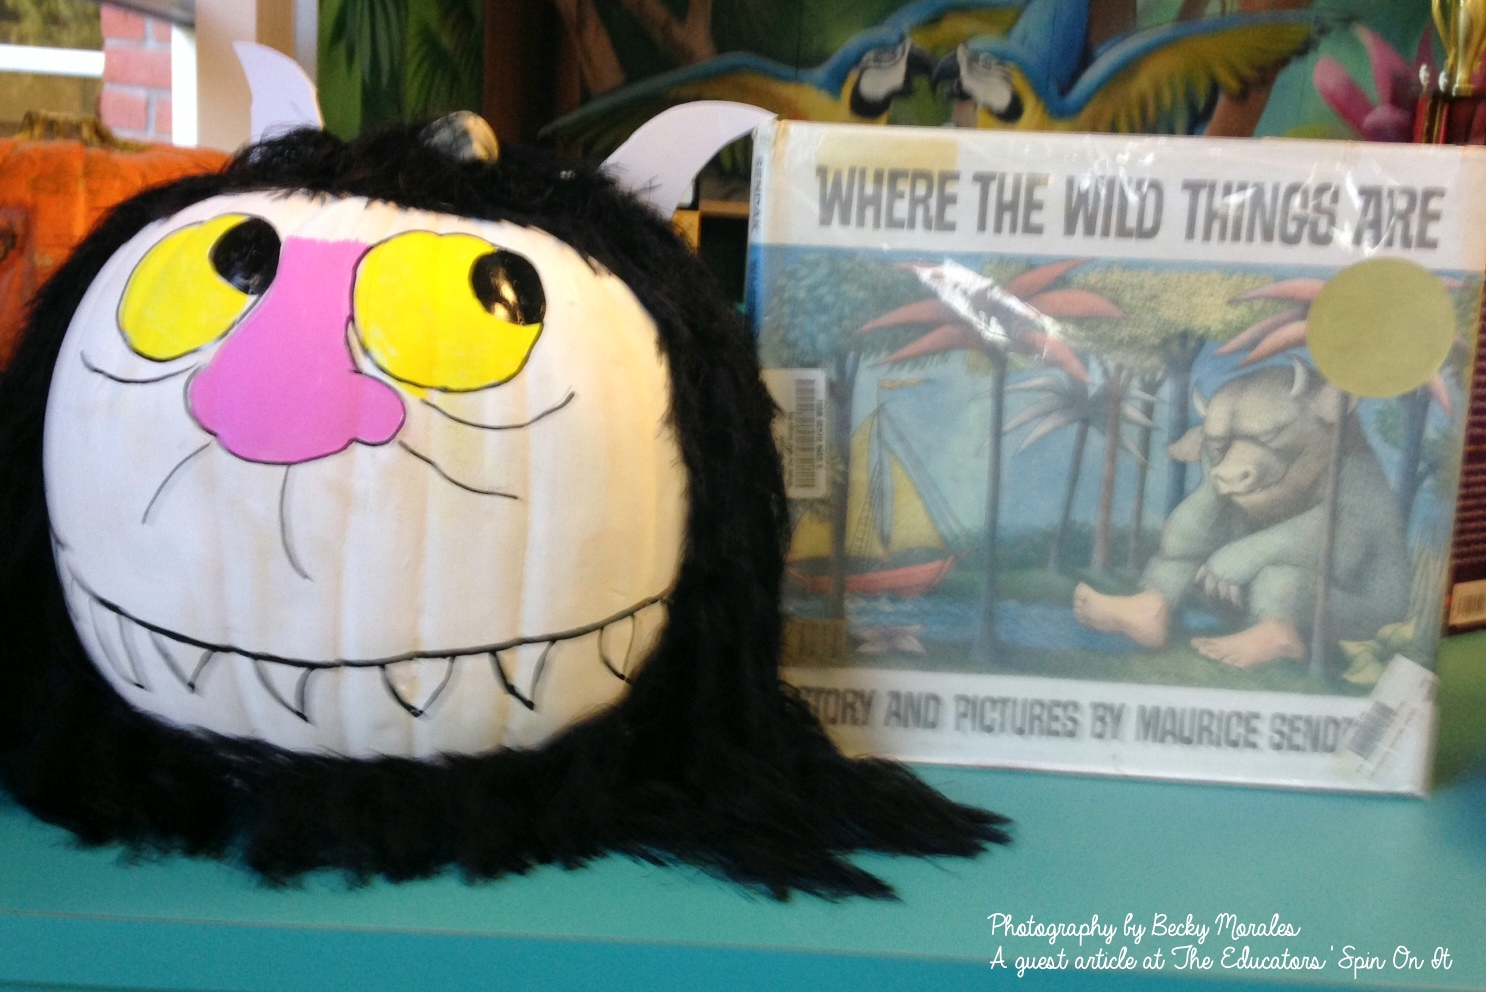 Directions on how to make the Where the Wild Things Are inspired Story Book Pumpkin Character: